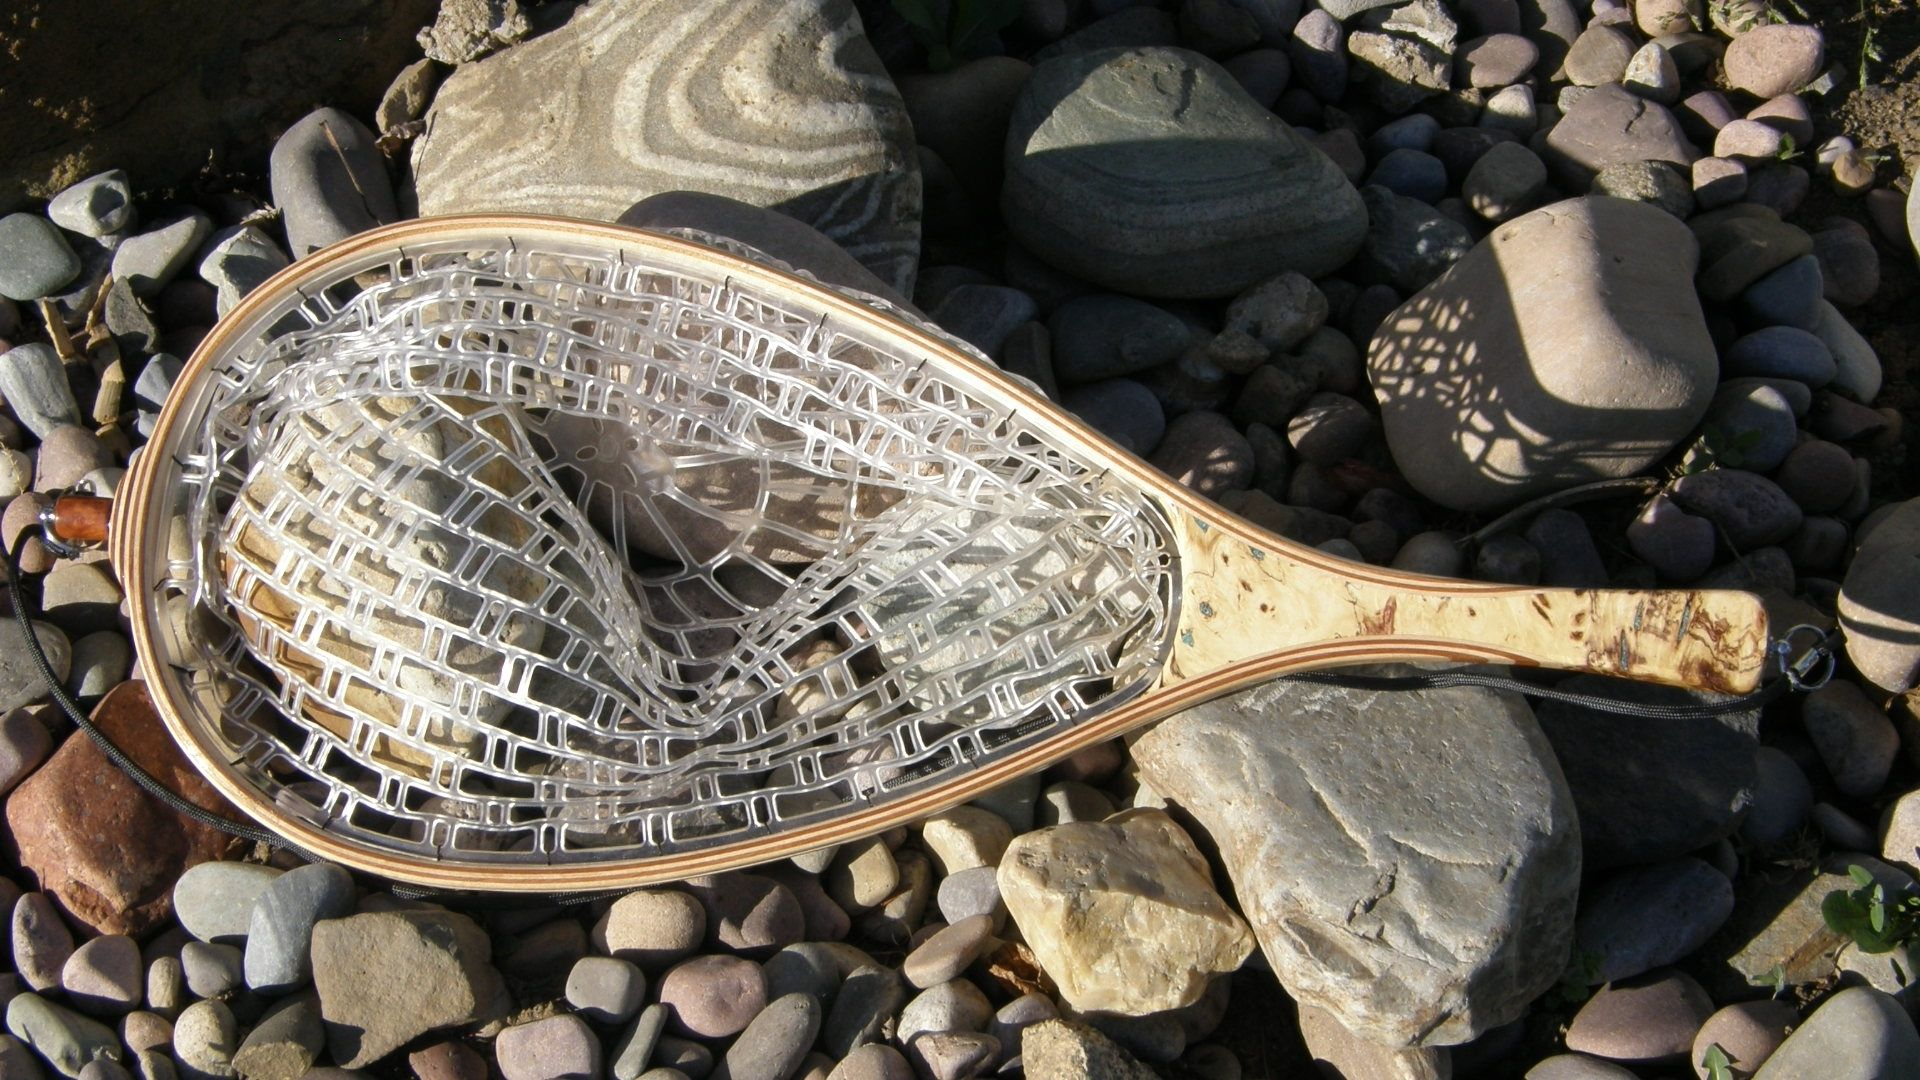 Hand made fly fishing landing net by bitterroot net co for Fly fishing net